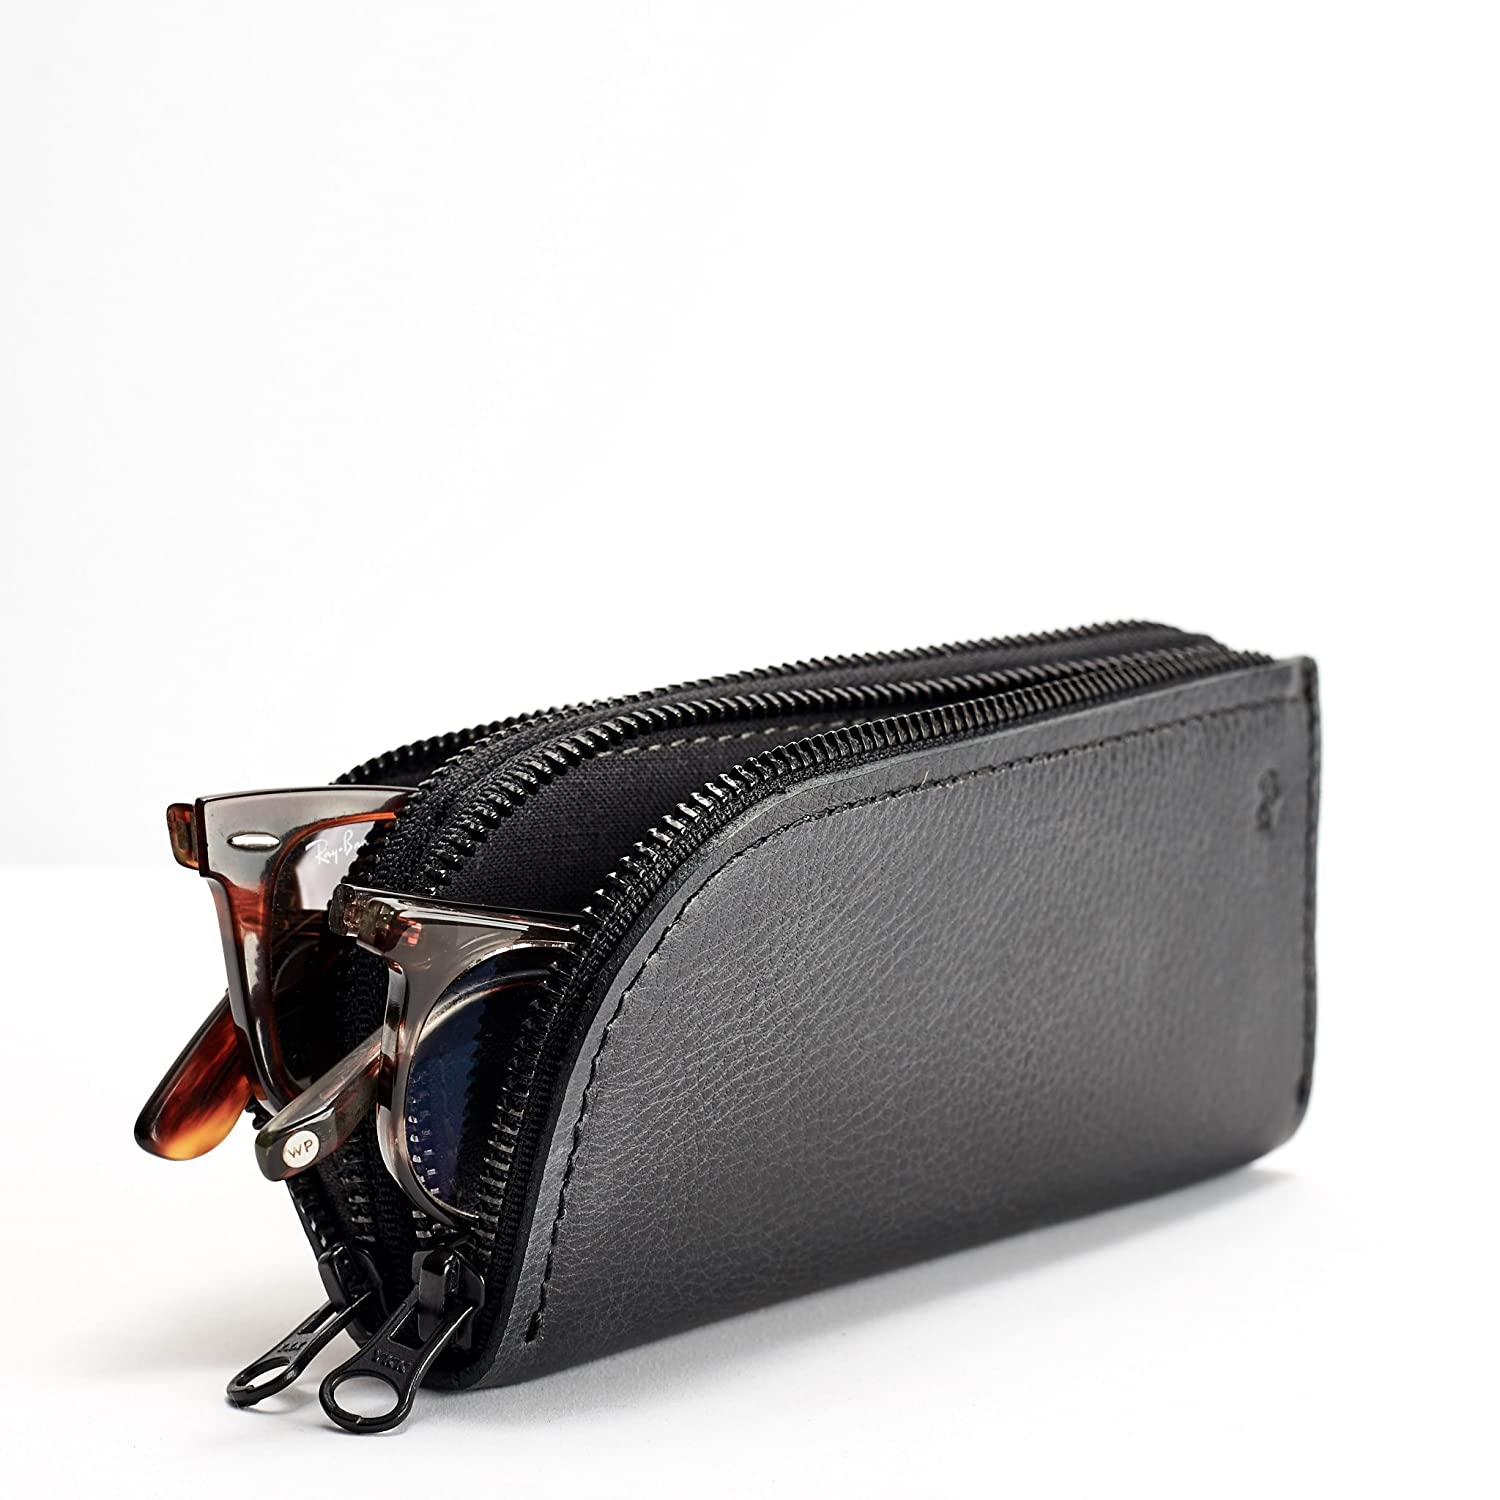 Capra Leather Glasses Case Double for Men, Black Two Sunglasses Bag, Handmade Eyewear Twin Pouch, Travel Ray-Ban Sleeve Cover. Mens Gift